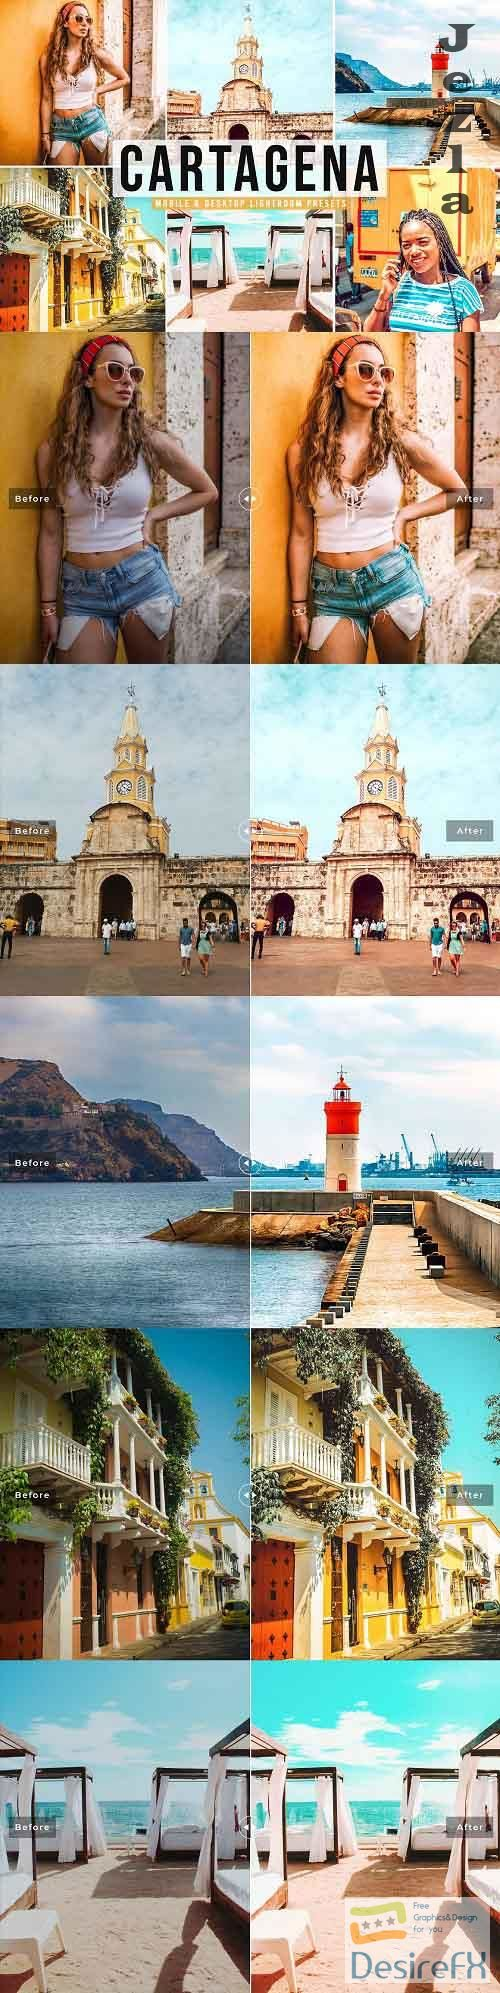 Cartagena Pro Lightroom Presets - 5539970 - Mobile & Desktop